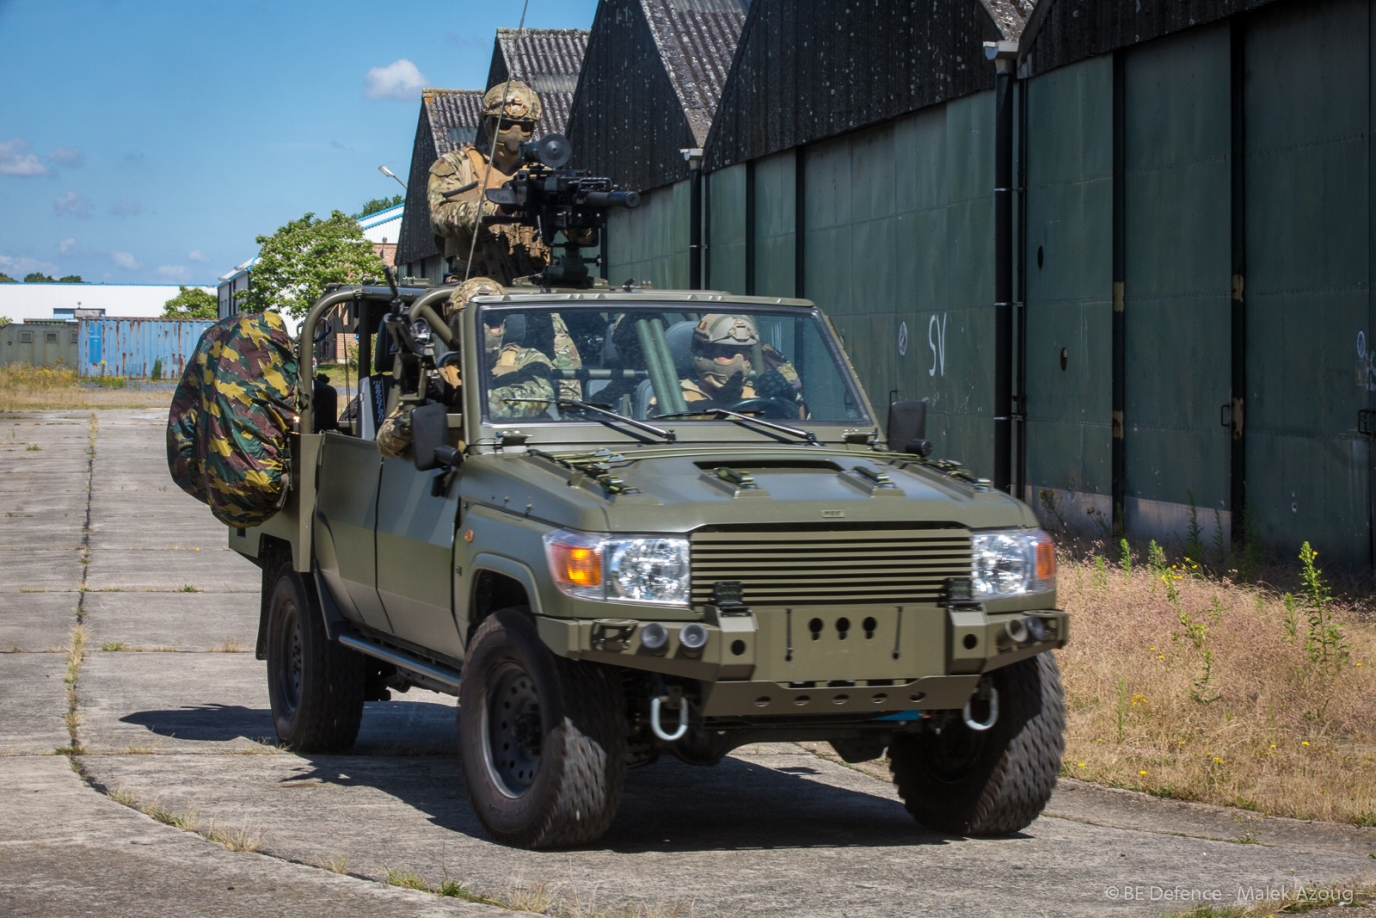 d8e5376f36 Belgian Minister of Defense unveils a prototype of the new FOX vehicle for Special  Forces Group